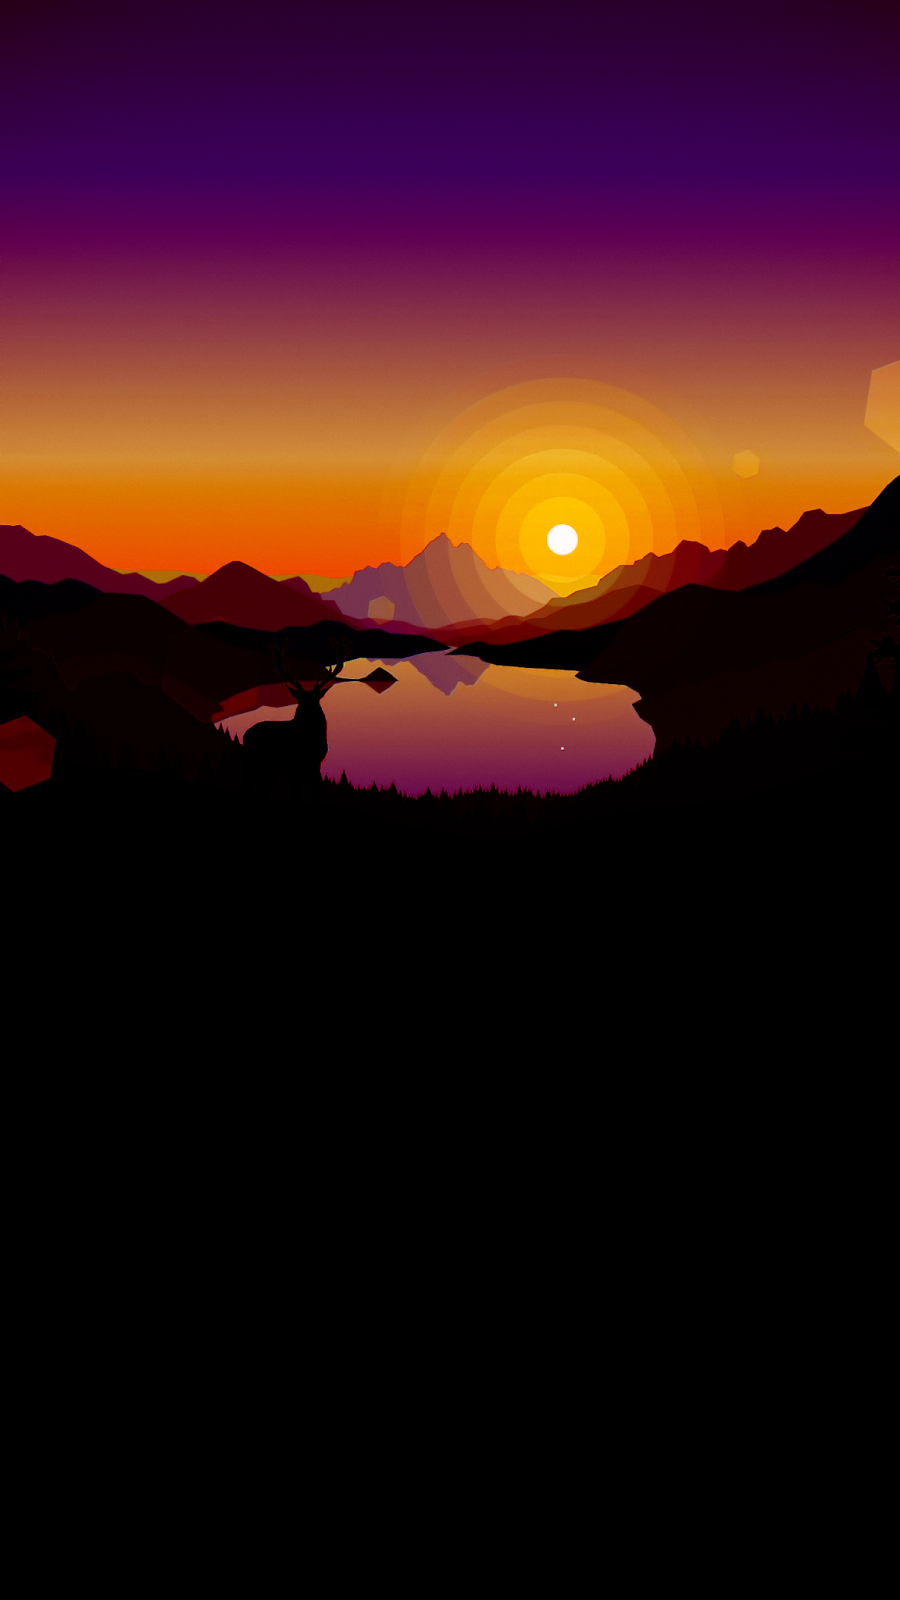 Firewatch Sunset lakeside Minimalist wallpaper phone